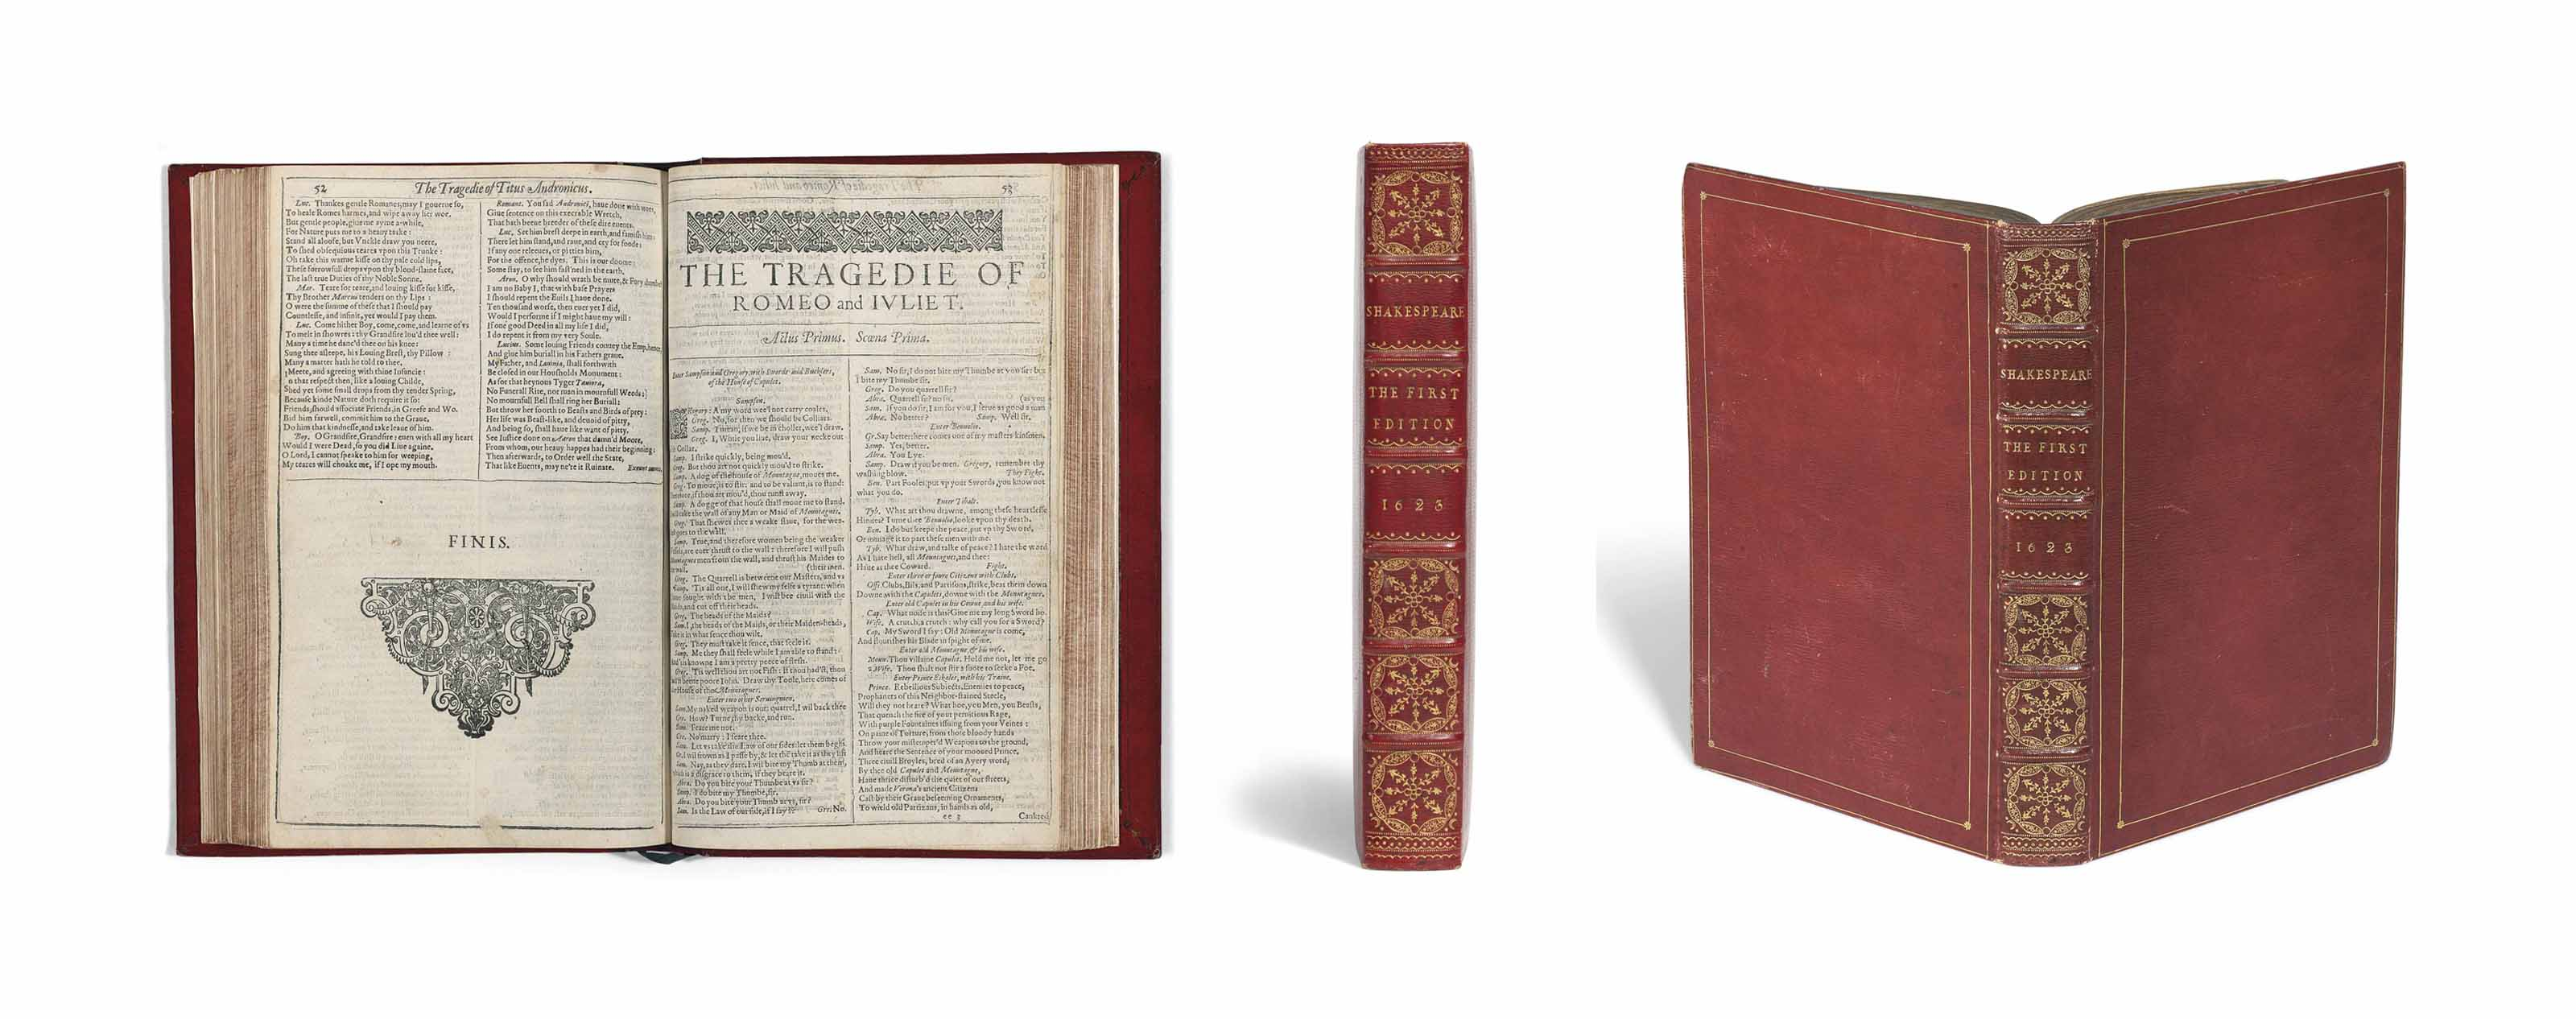 SHAKESPEARE, William (1564-1616). Comedies, Histories, and Tragedies, edited by John Heminge (d. 1630) and Henry Condell (d. 1627). London: Isaac Jaggard, and Edward Blount at the Charges of W. Jaggard, Ed. Blount, I. Smithweeke, and W. Aspley, 1623.